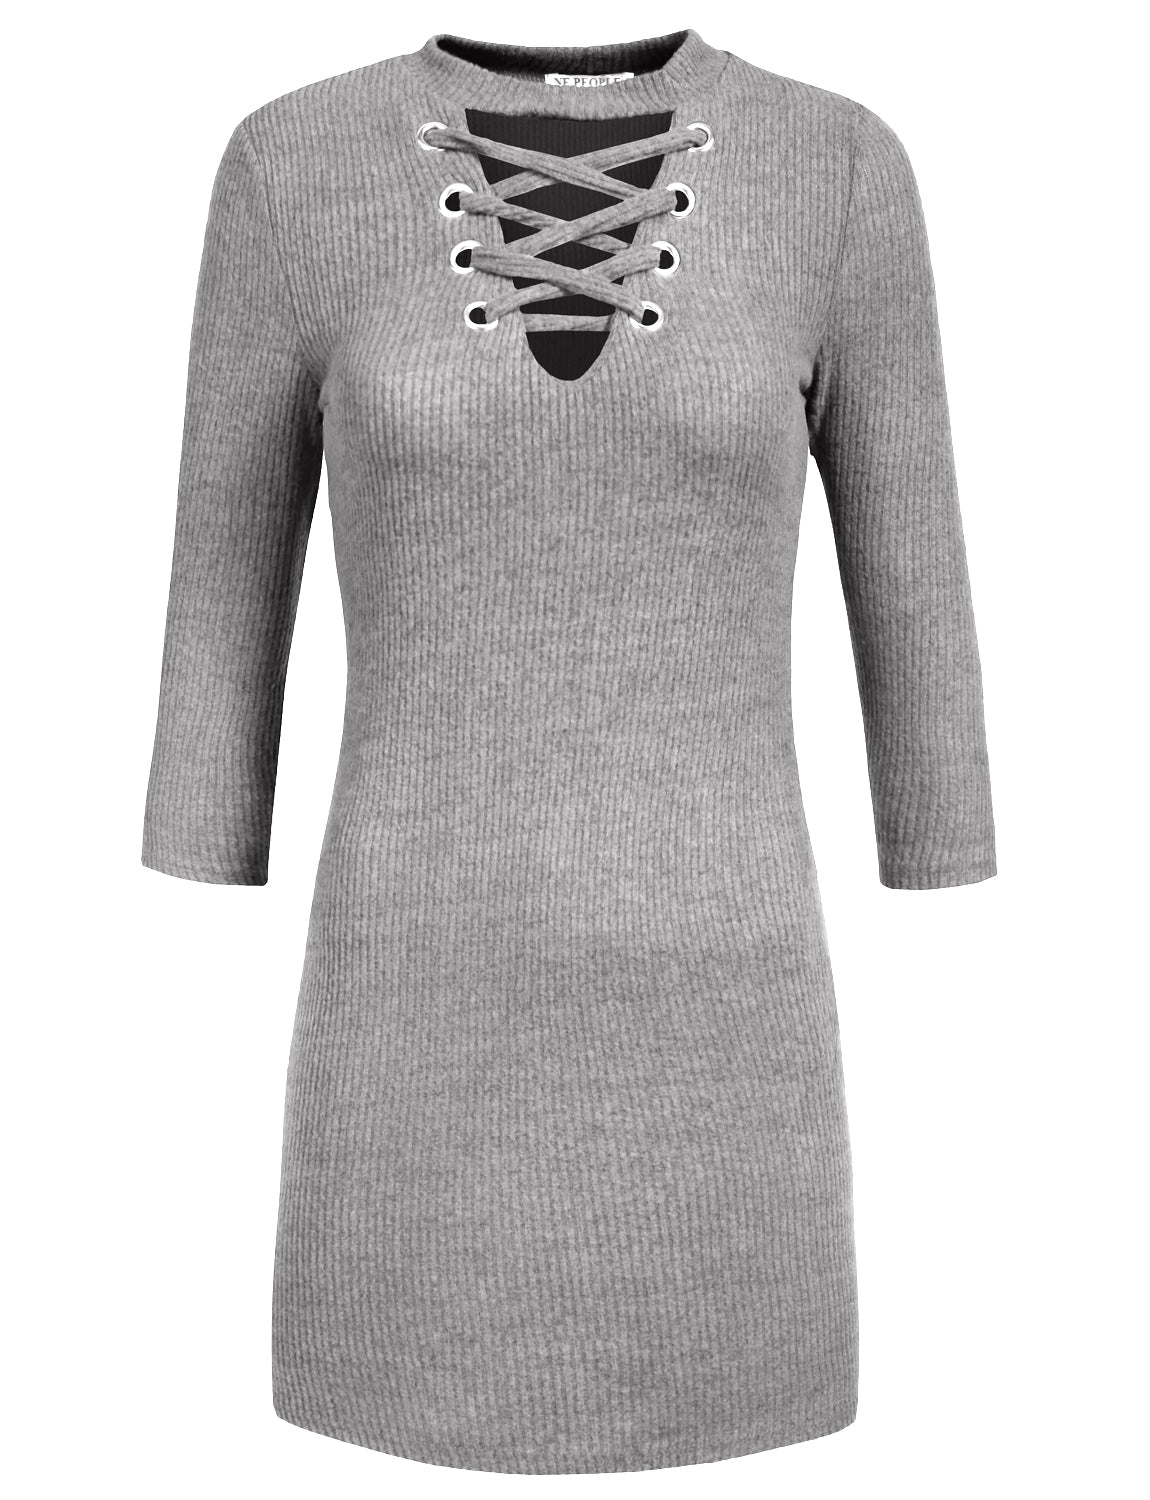 c2fa22d73e76 FITTED LACE UP FRONT V-NECK LONG SLEEVE KNIT SWEATER DRESS TOP - NE ...